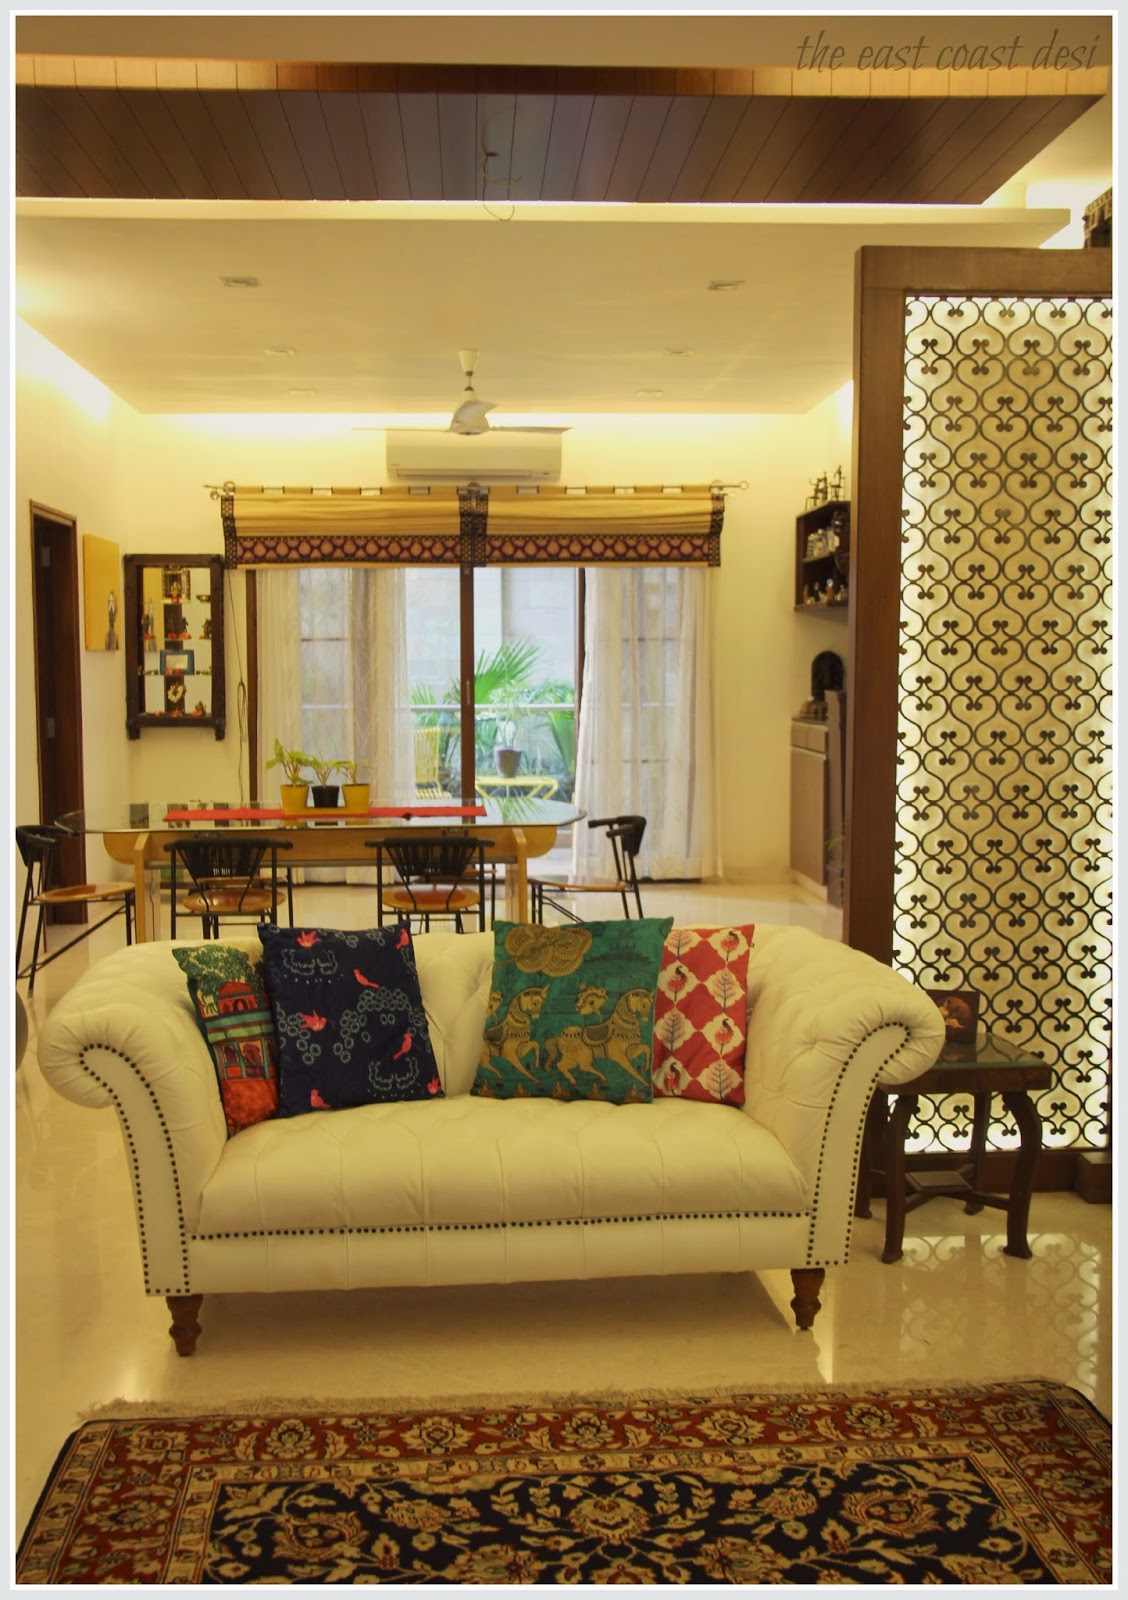 The east coast desi masterful mixing home tour for Living room interior design india